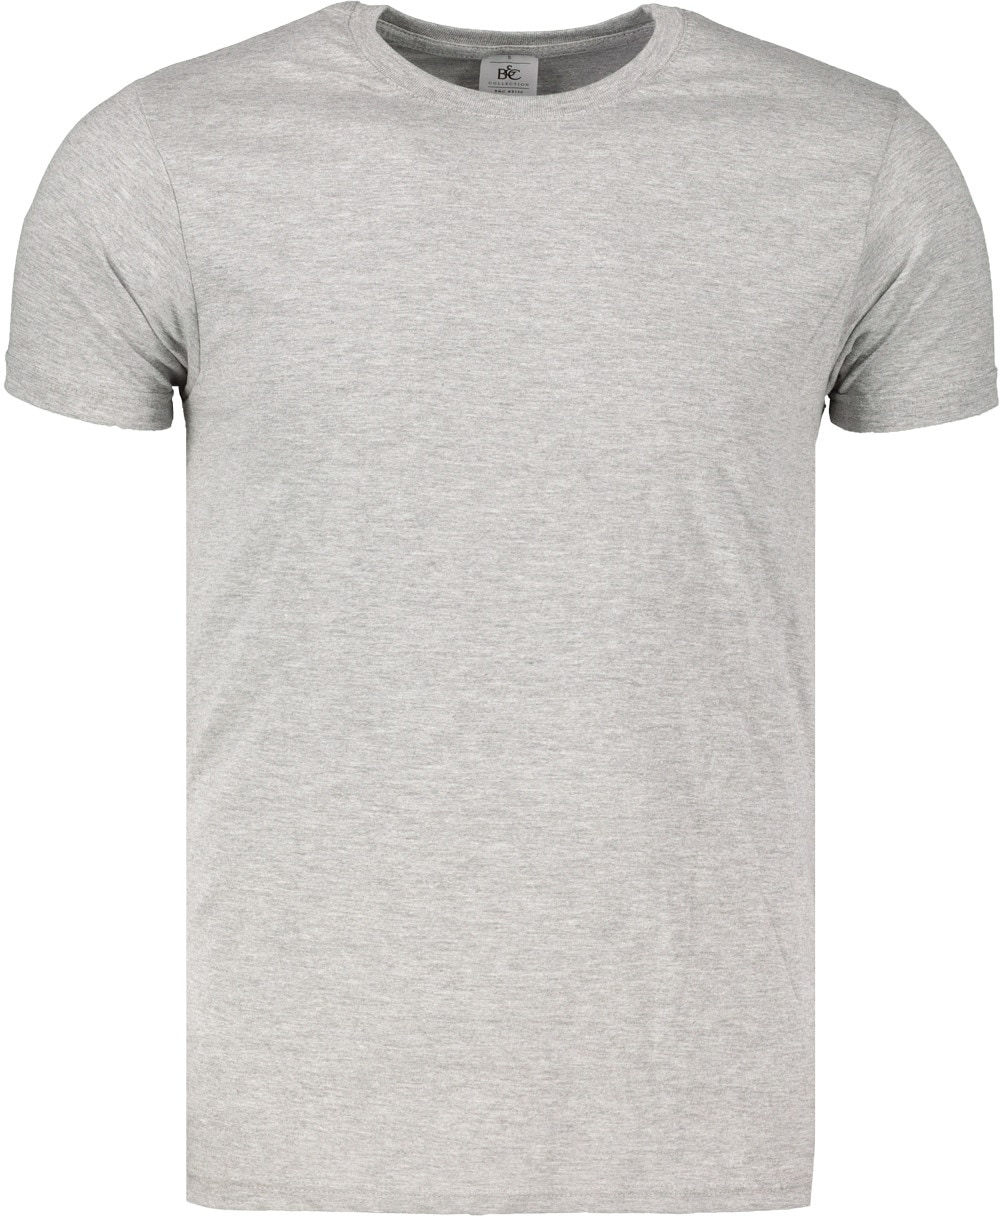 Men's t-shirt B & C Basic